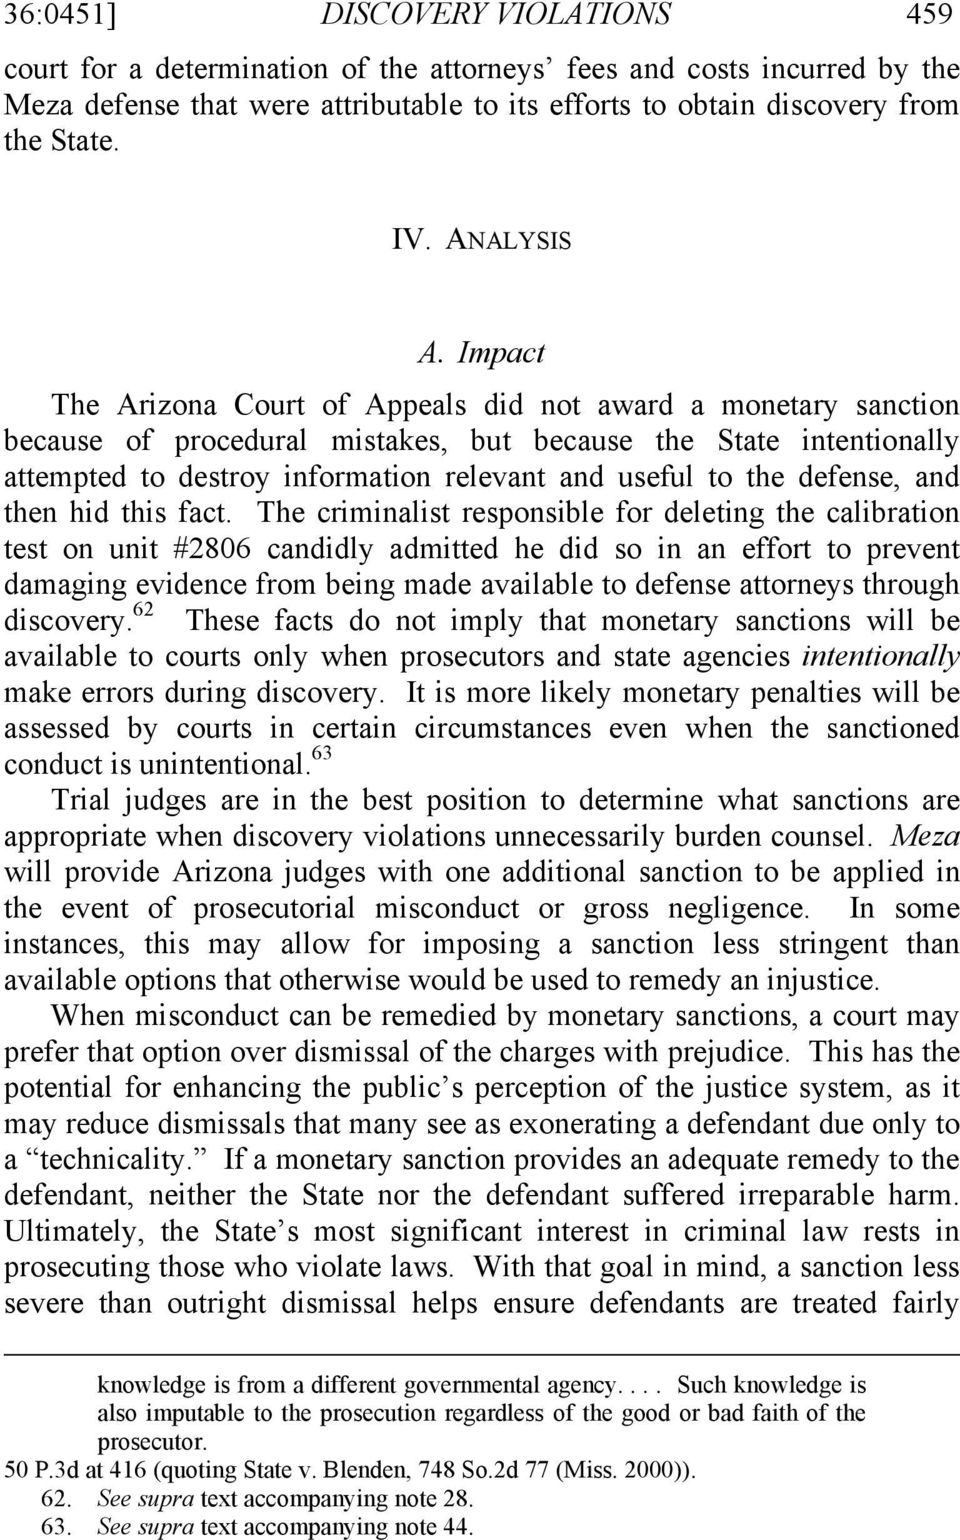 Impact The Arizona Court of Appeals did not award a monetary sanction because of procedural mistakes, but because the State intentionally attempted to destroy information relevant and useful to the